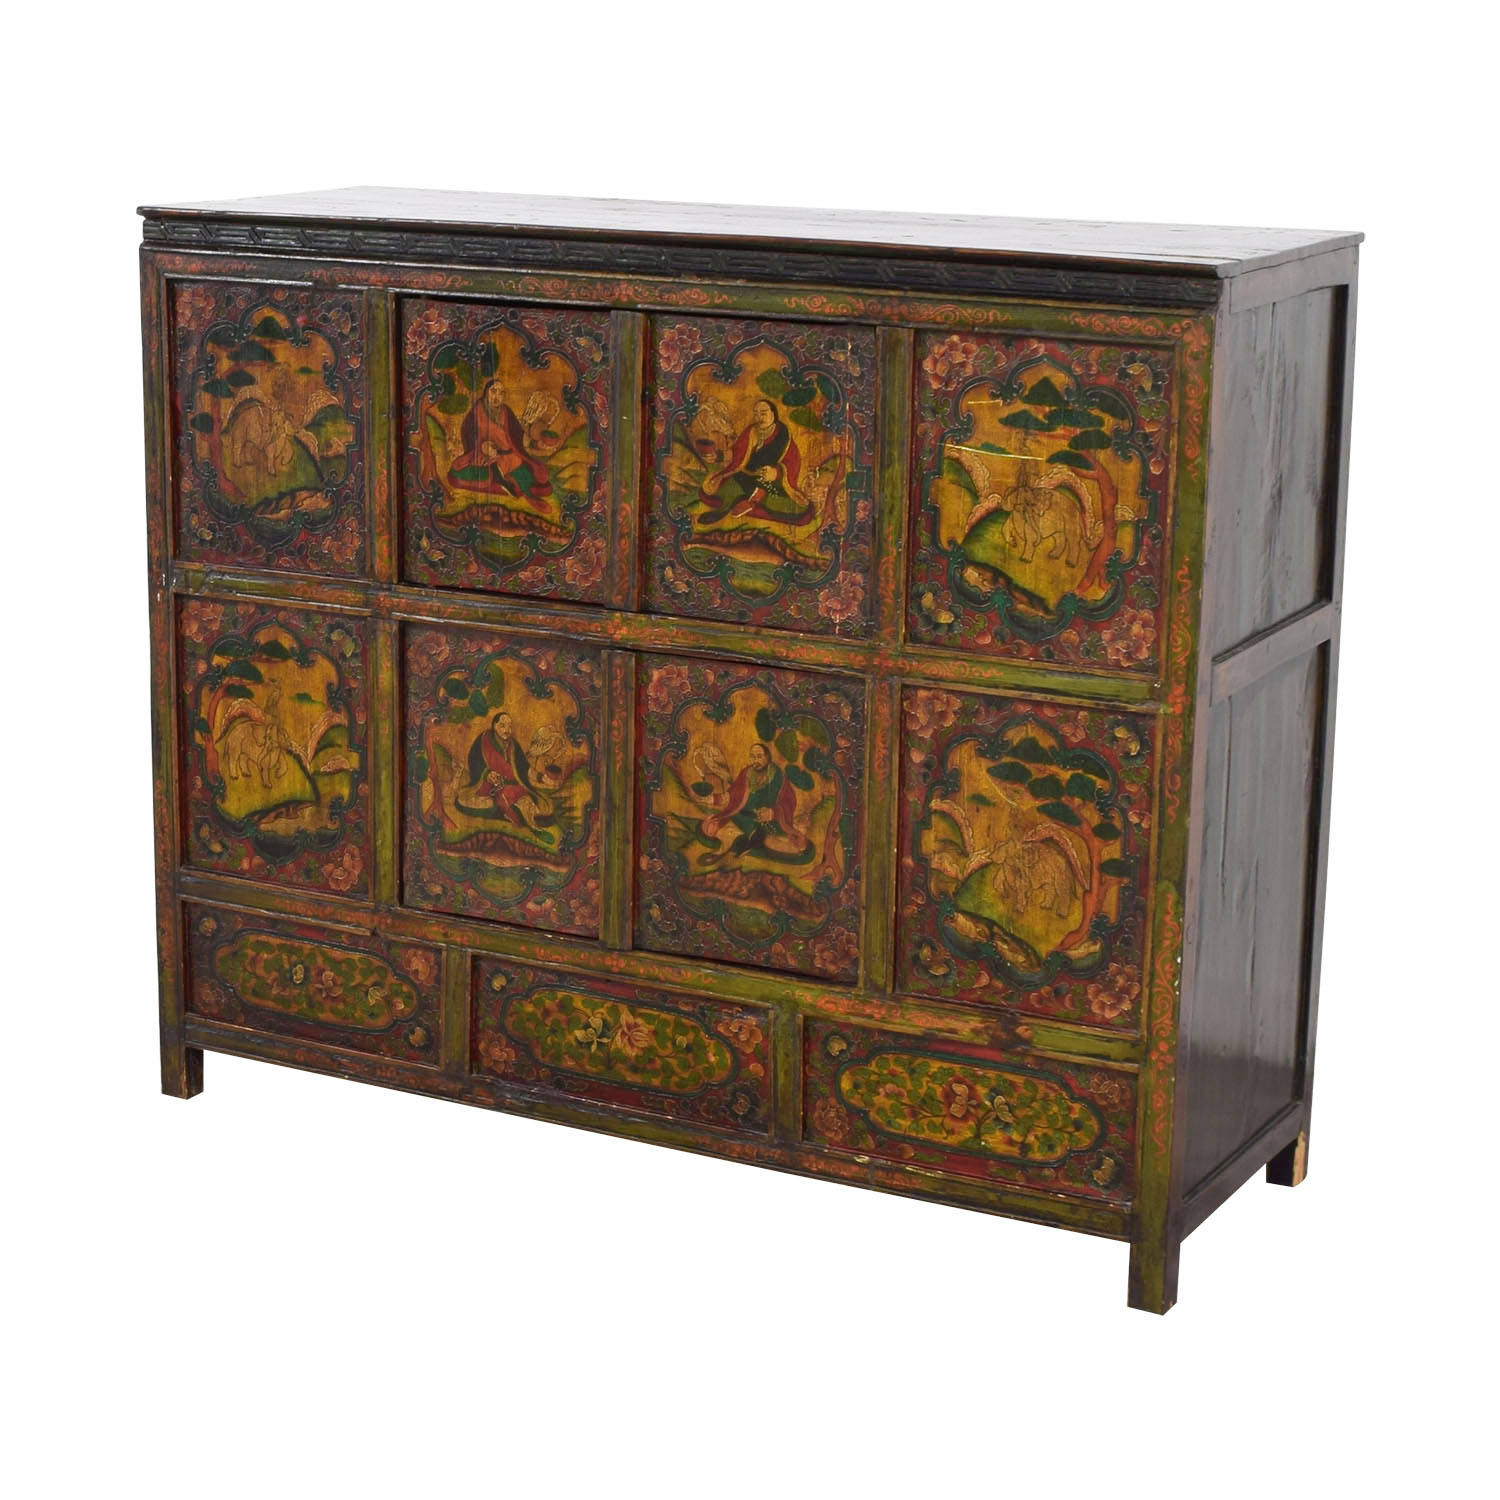 Authentic Custom Tibetan Painted Cabinet Cabinets & Sideboards